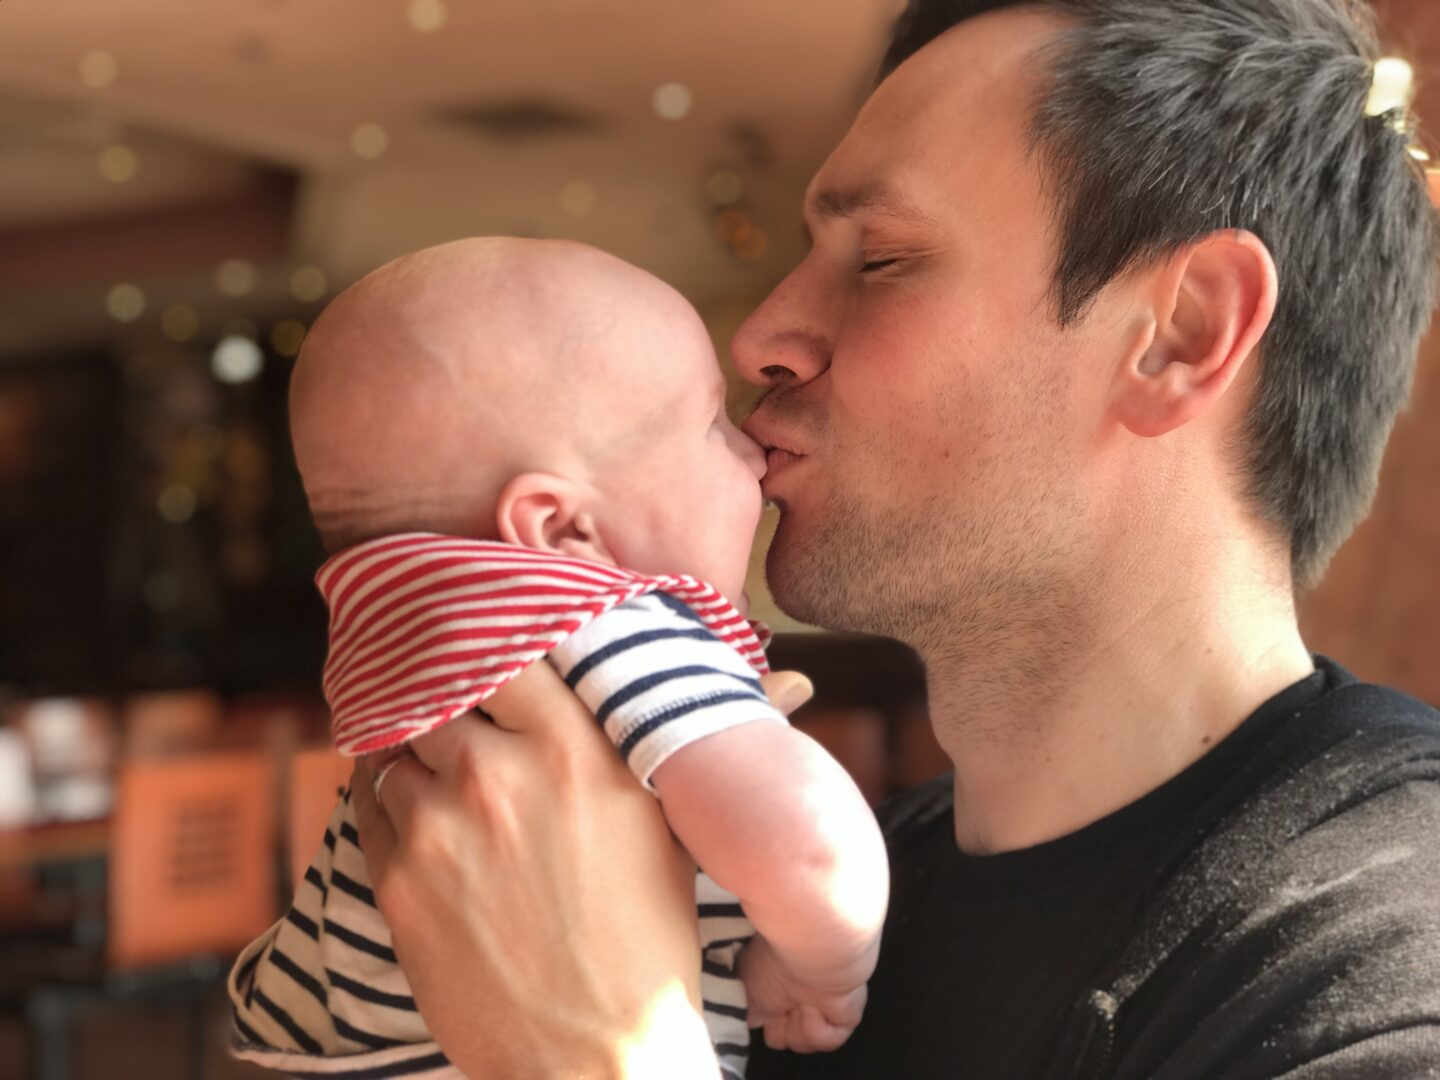 Neil holding Felix and giving him a kiss on the nose